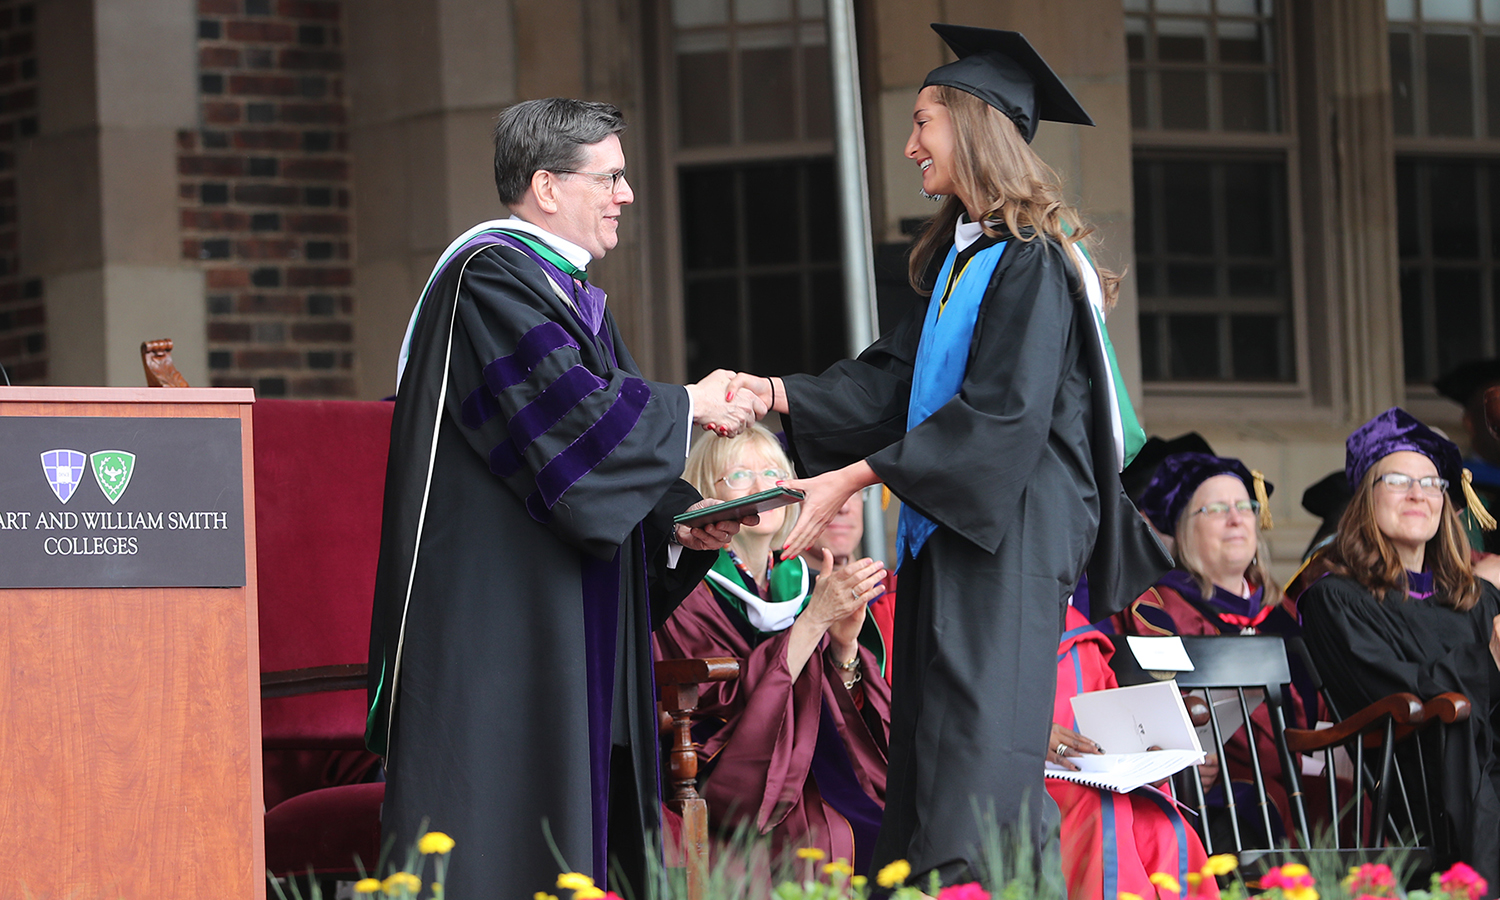 President Mark D. Gearan presents Kelly Mauch '17 with her diploma during Commencement.